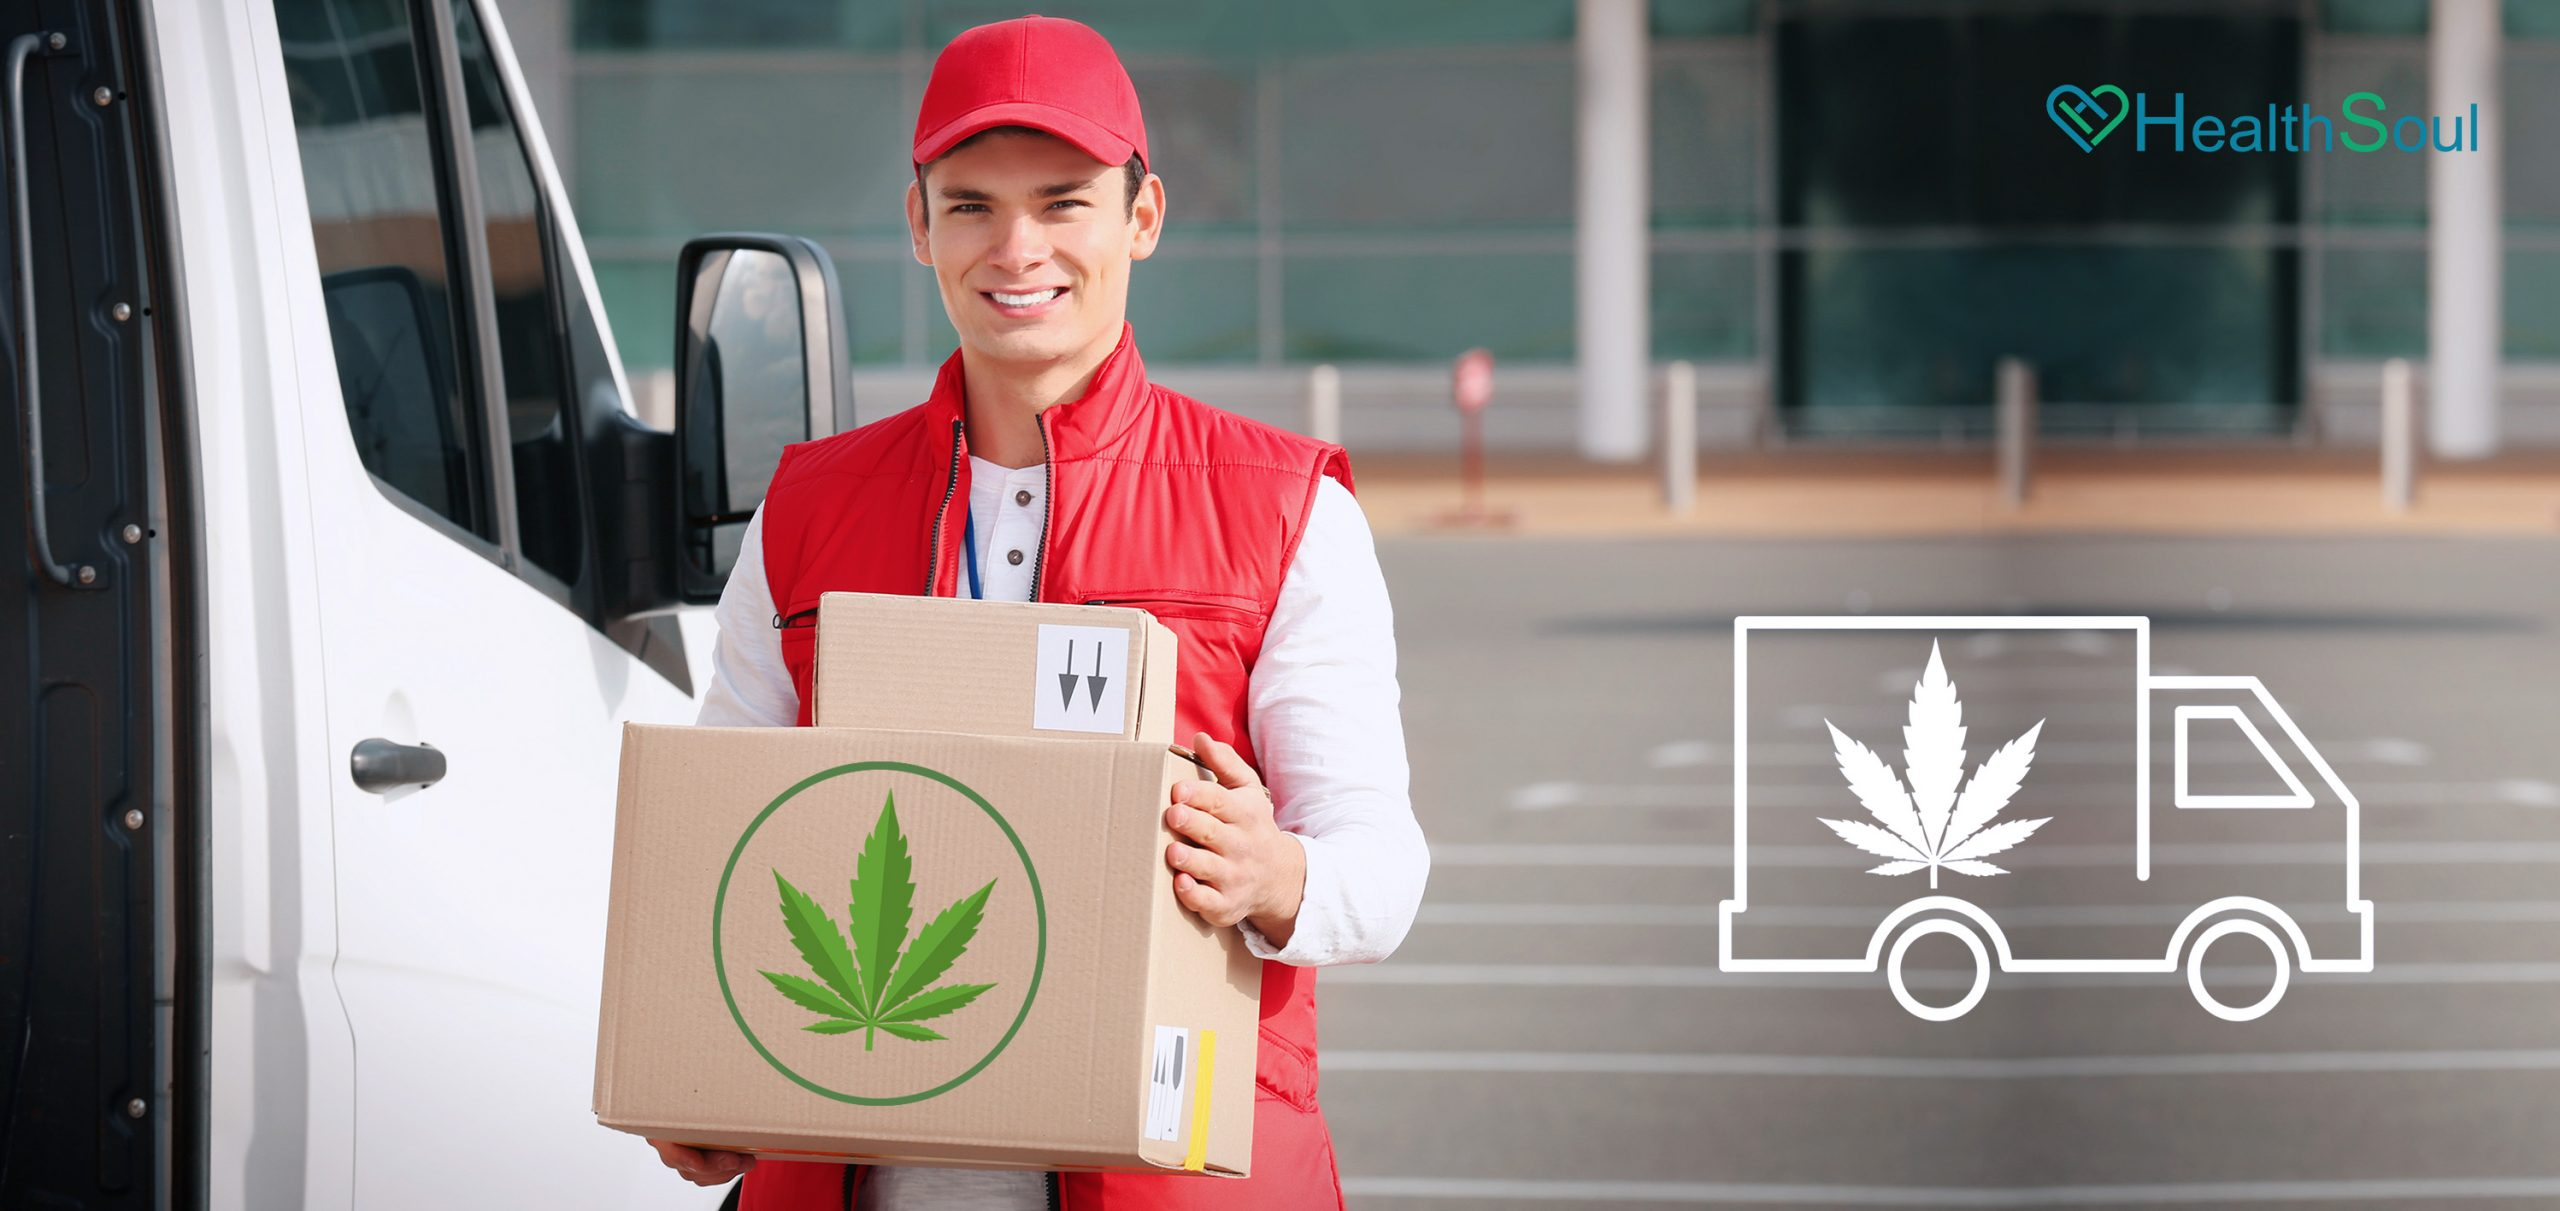 7 Reasons Why You Shouldn't Have Any Preconce ived Notions About Weed Delivery Services | HealthSoul